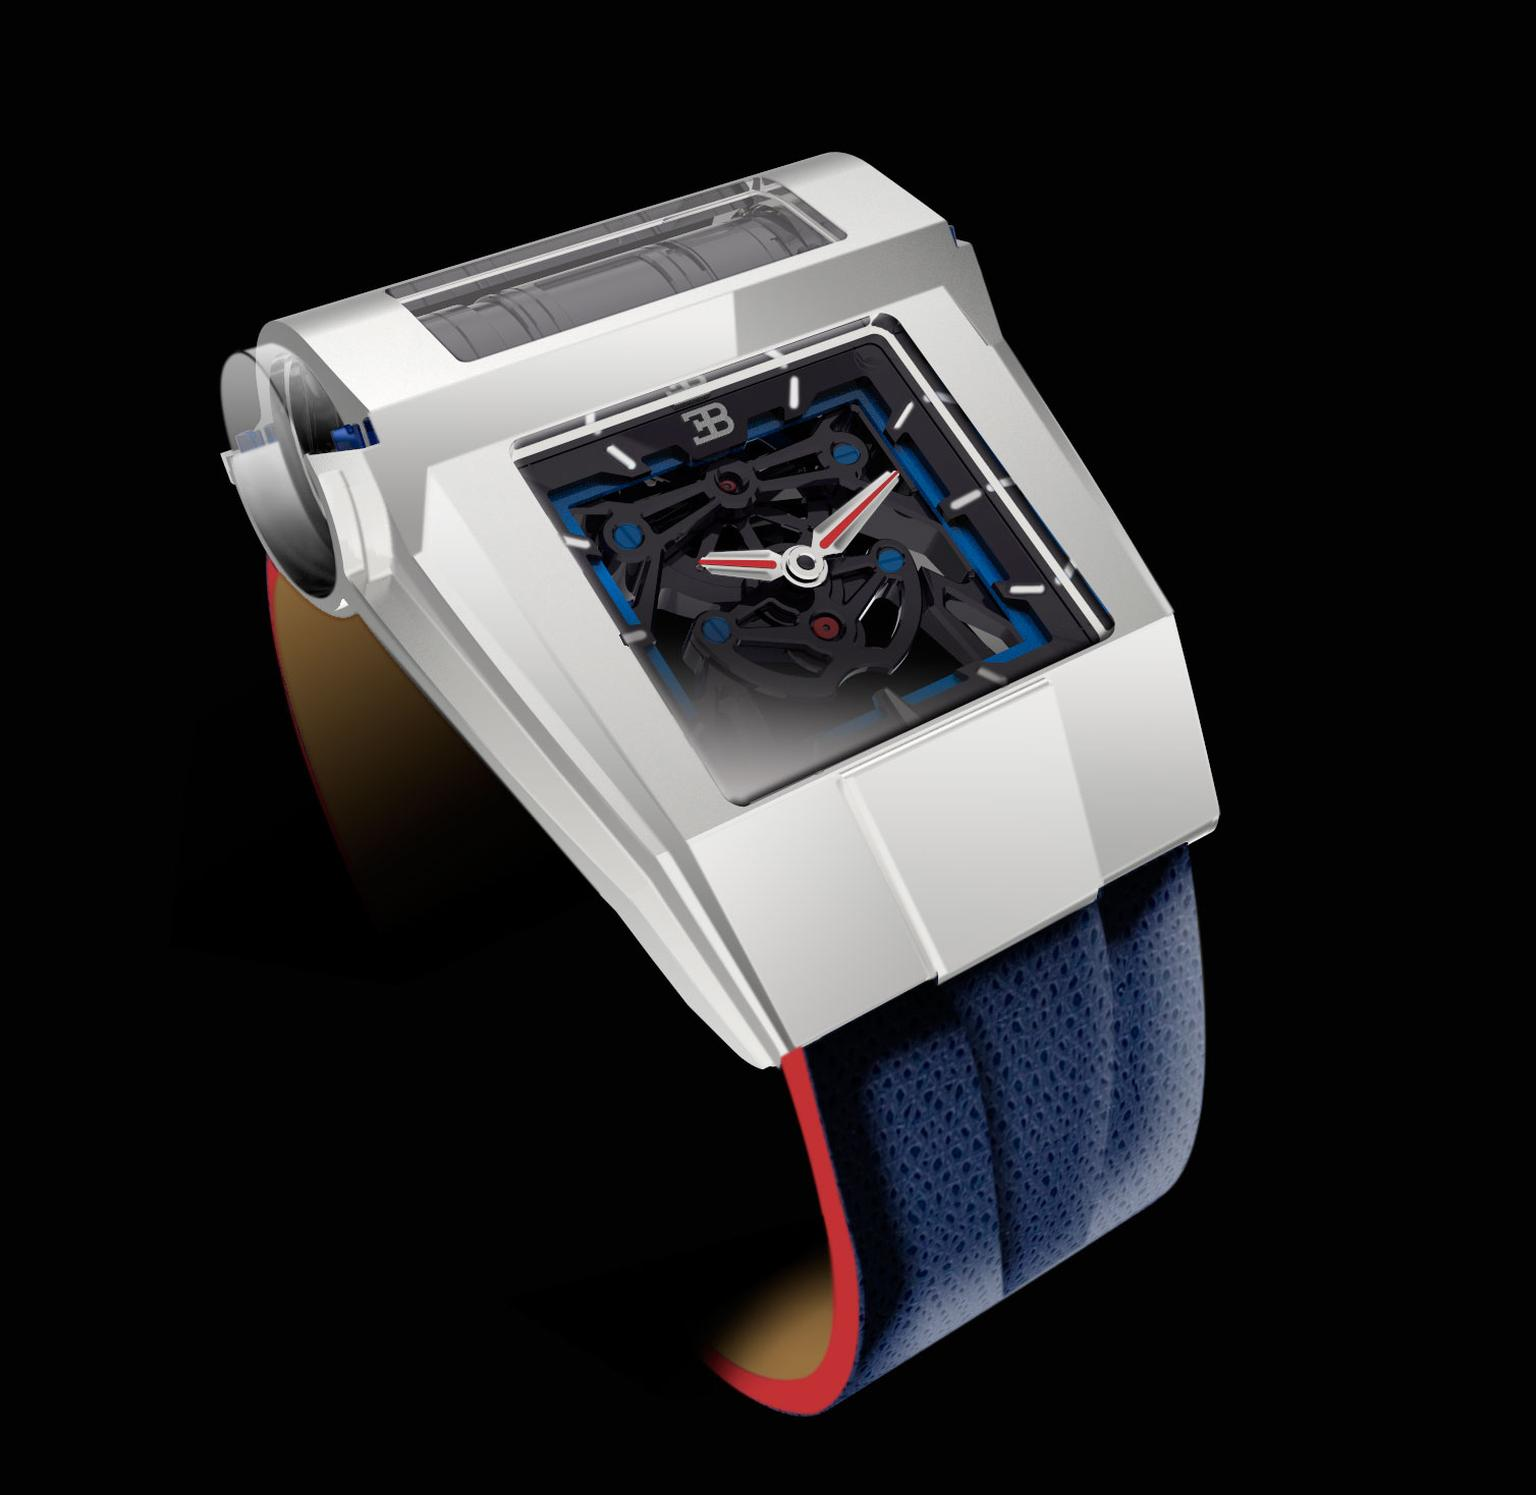 Parmigiani PF 390 Concept watch